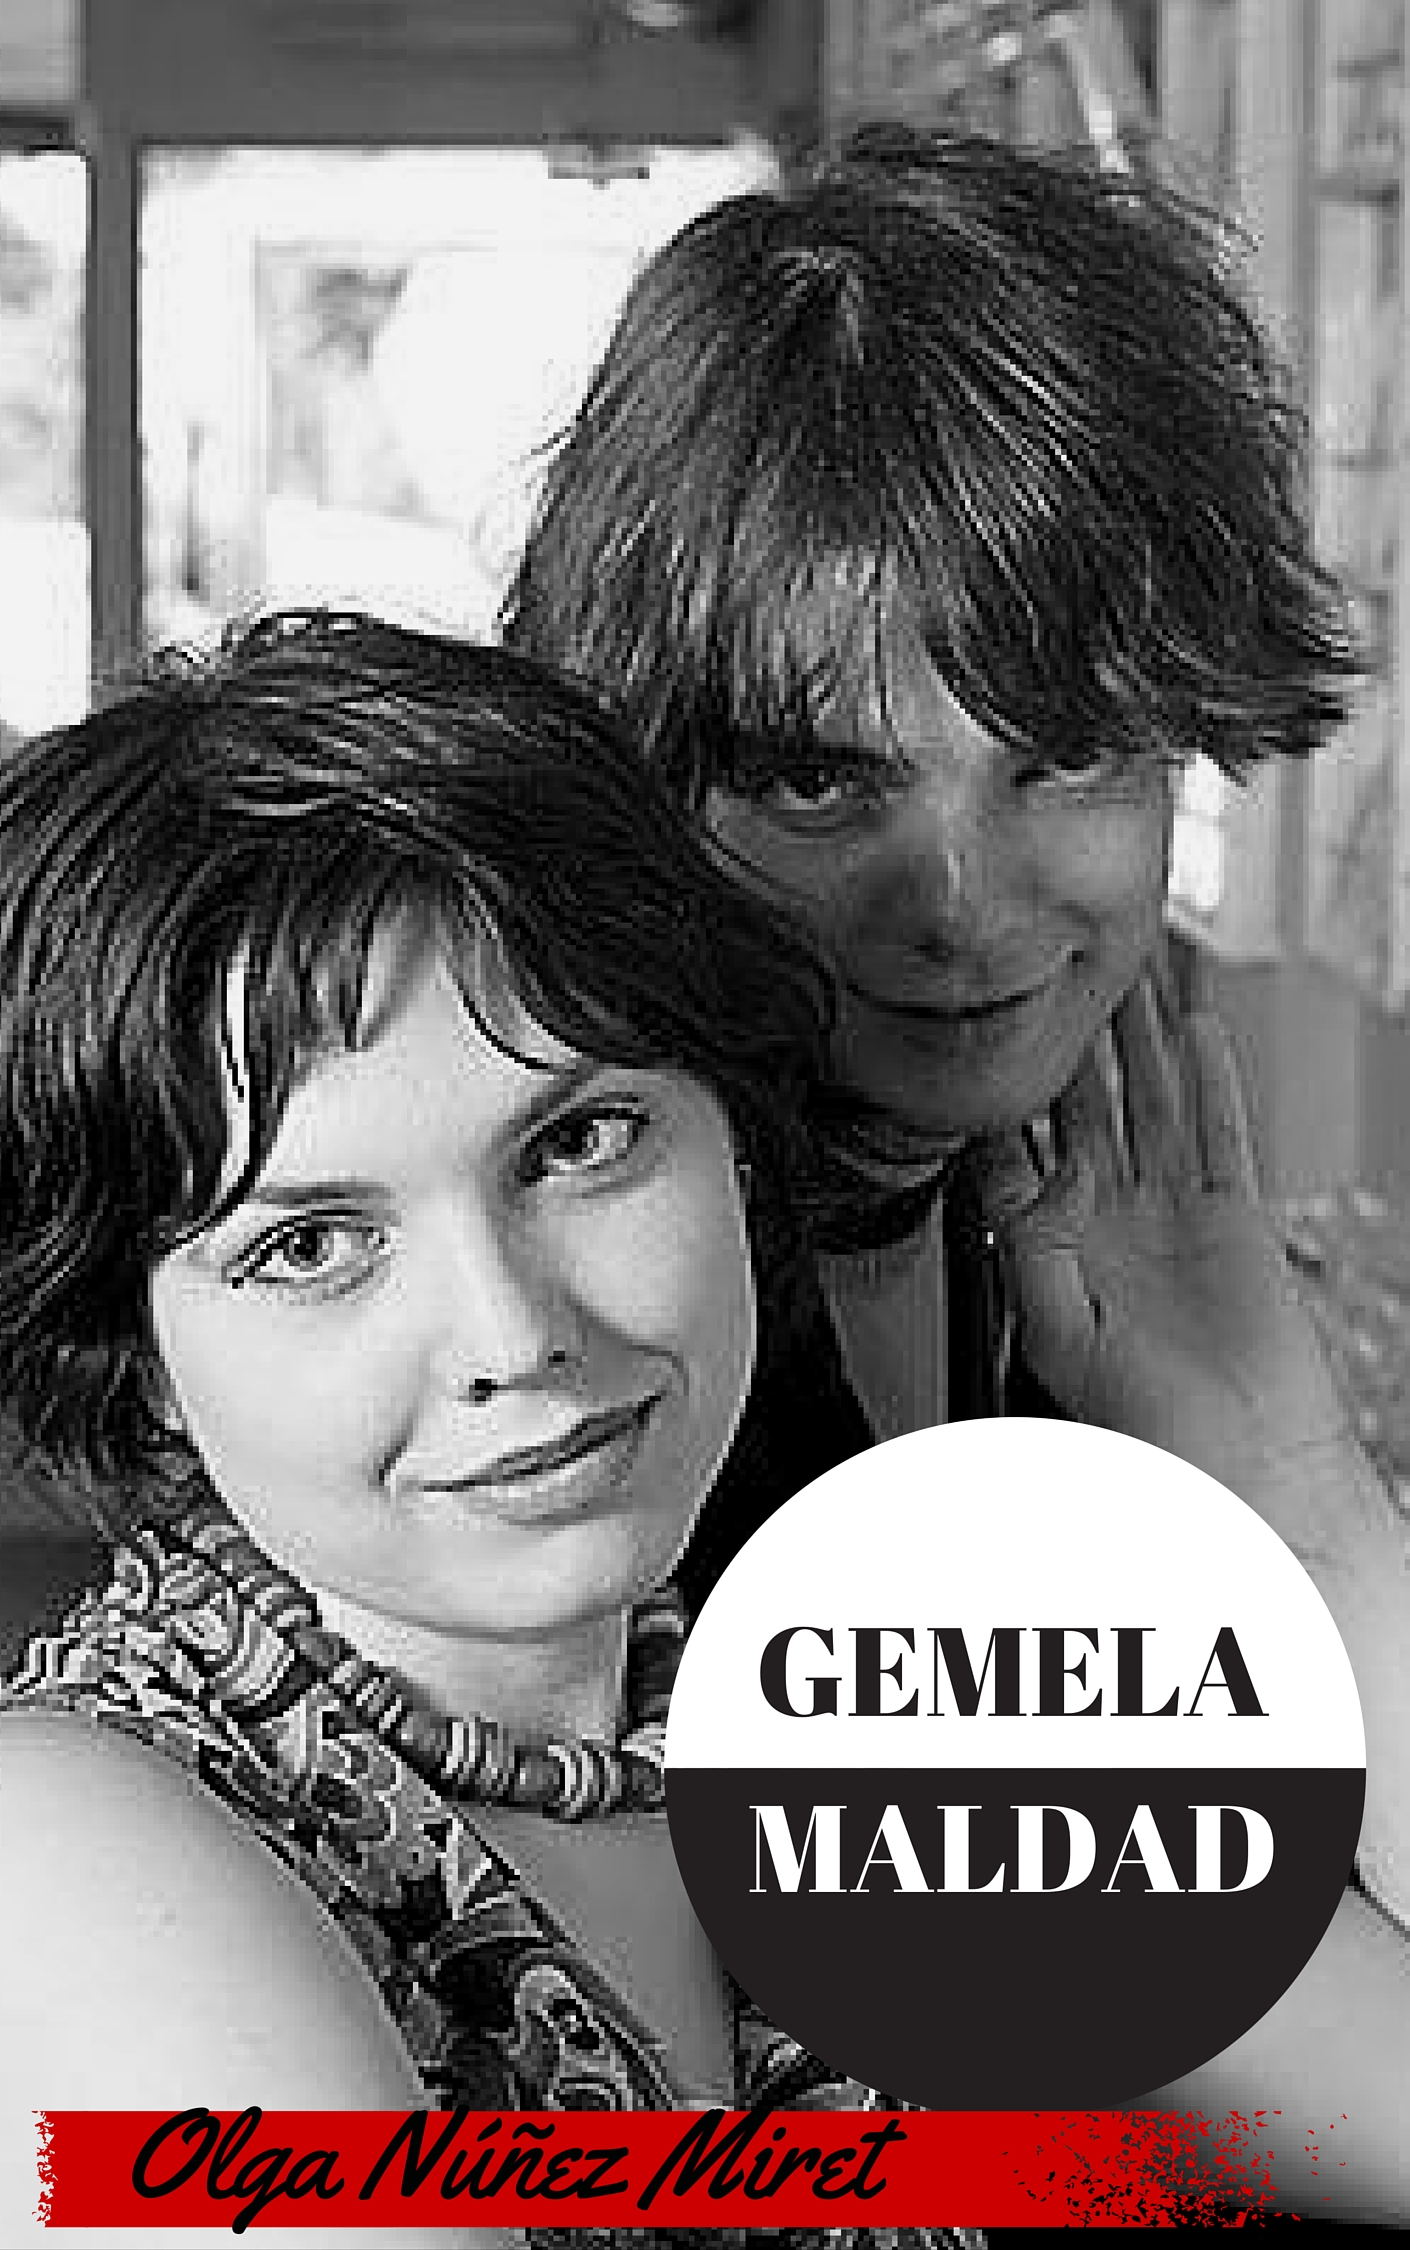 And In Spanish, Gemela Maldad